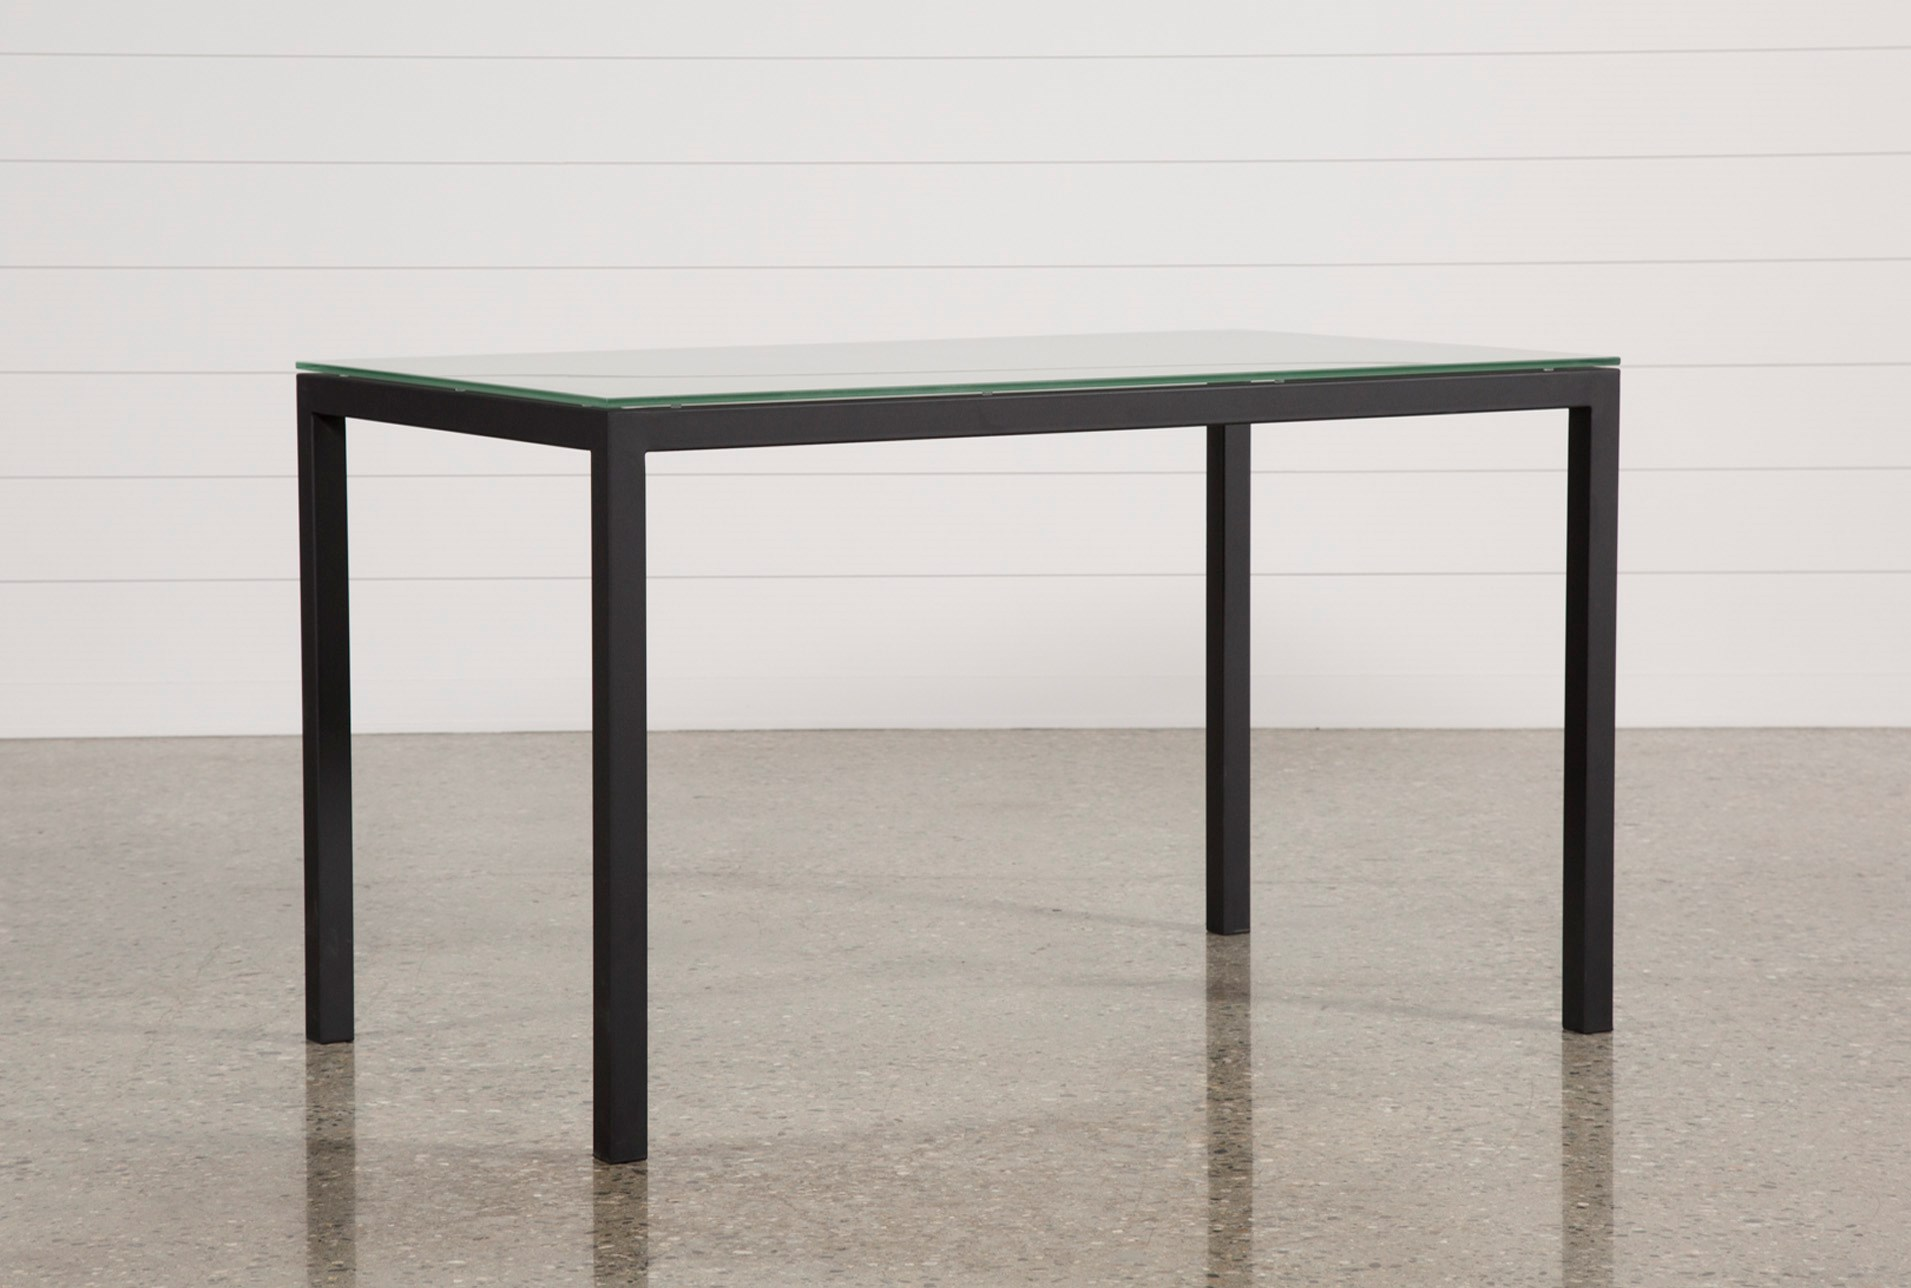 Ina Matte Black 60 Inch Counter Table W Frosted Gl Qty 1 Has Been Successfully Added To Your Cart